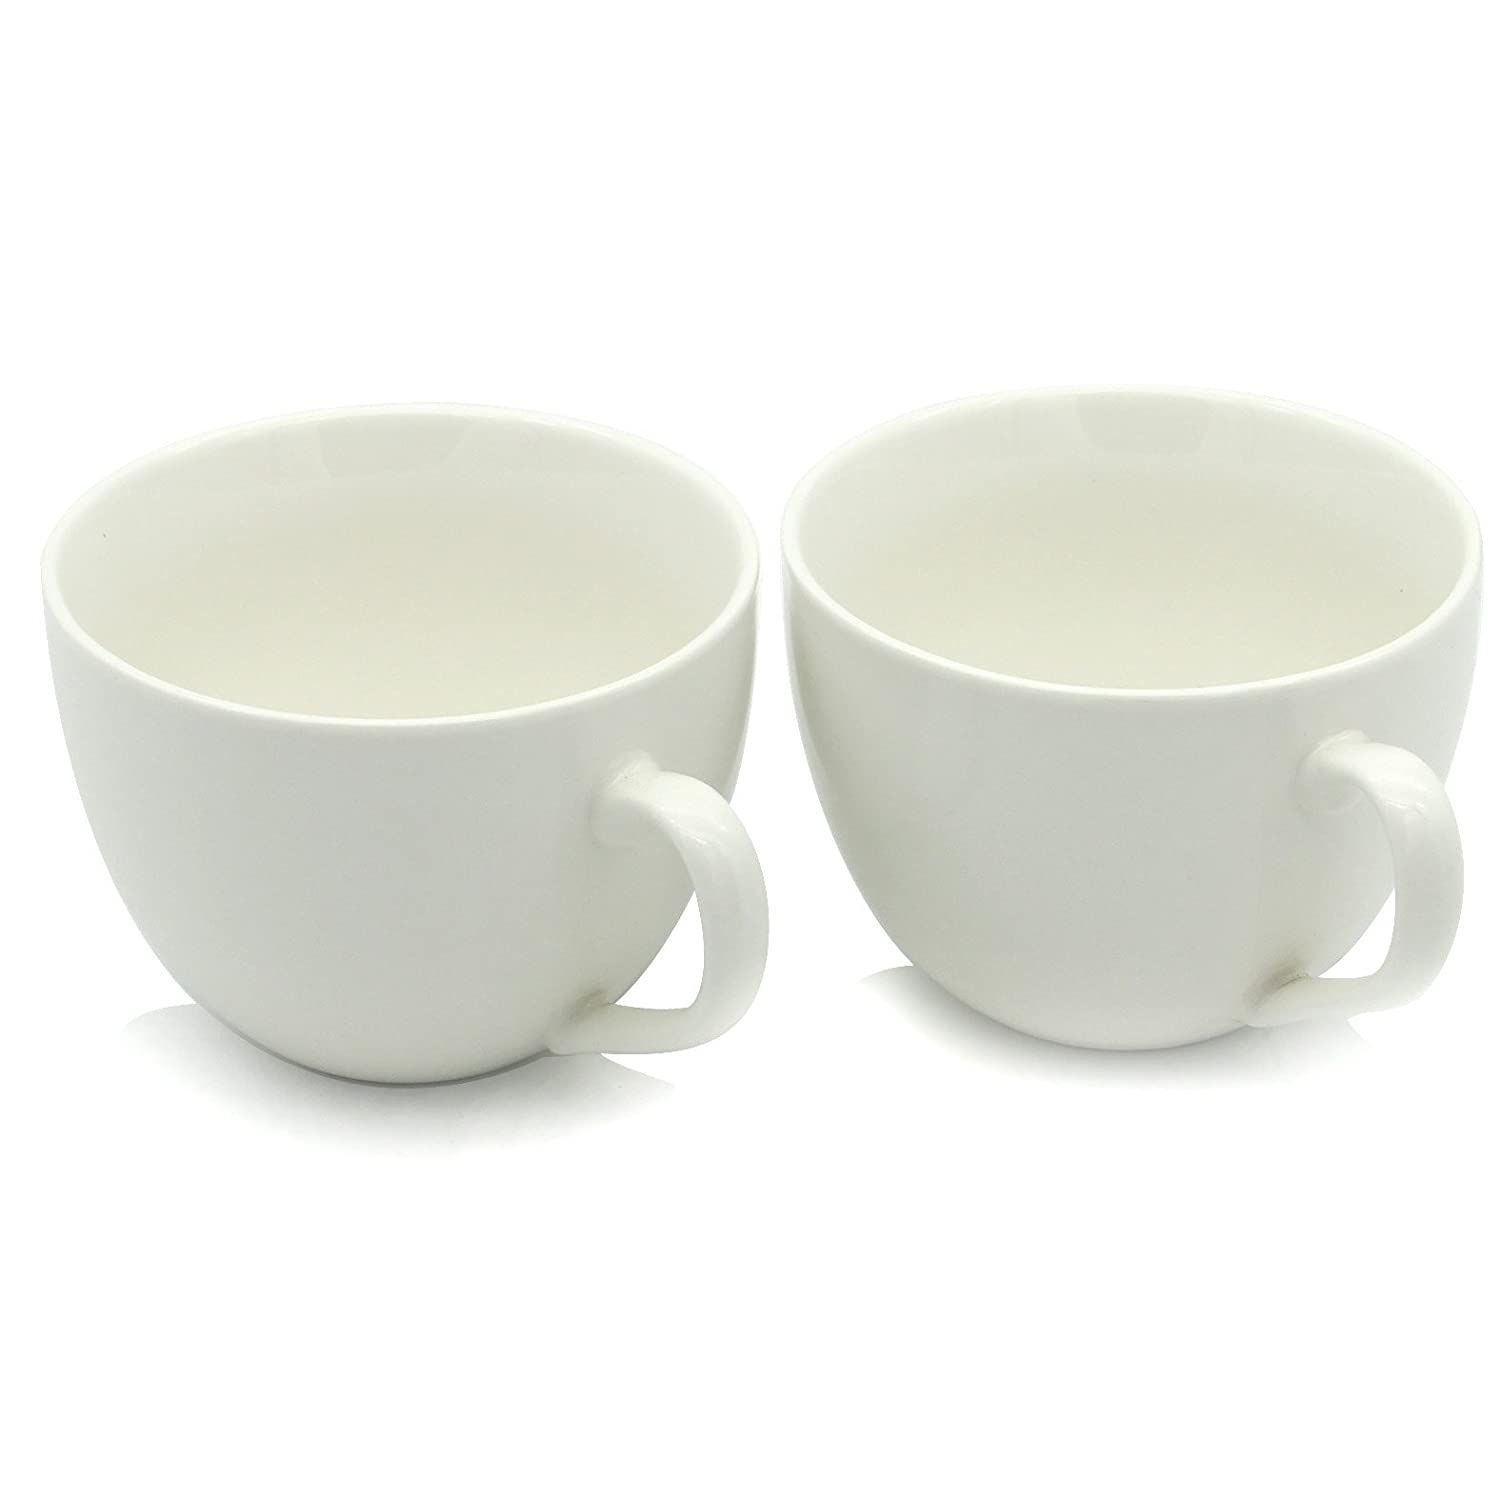 15 oz Jumbo Coffee Mugs, Zocokey M030 Novelty ceramic bowl for Fruit and berries with ice-cream, oatmeal and cereal, Set of 2, White